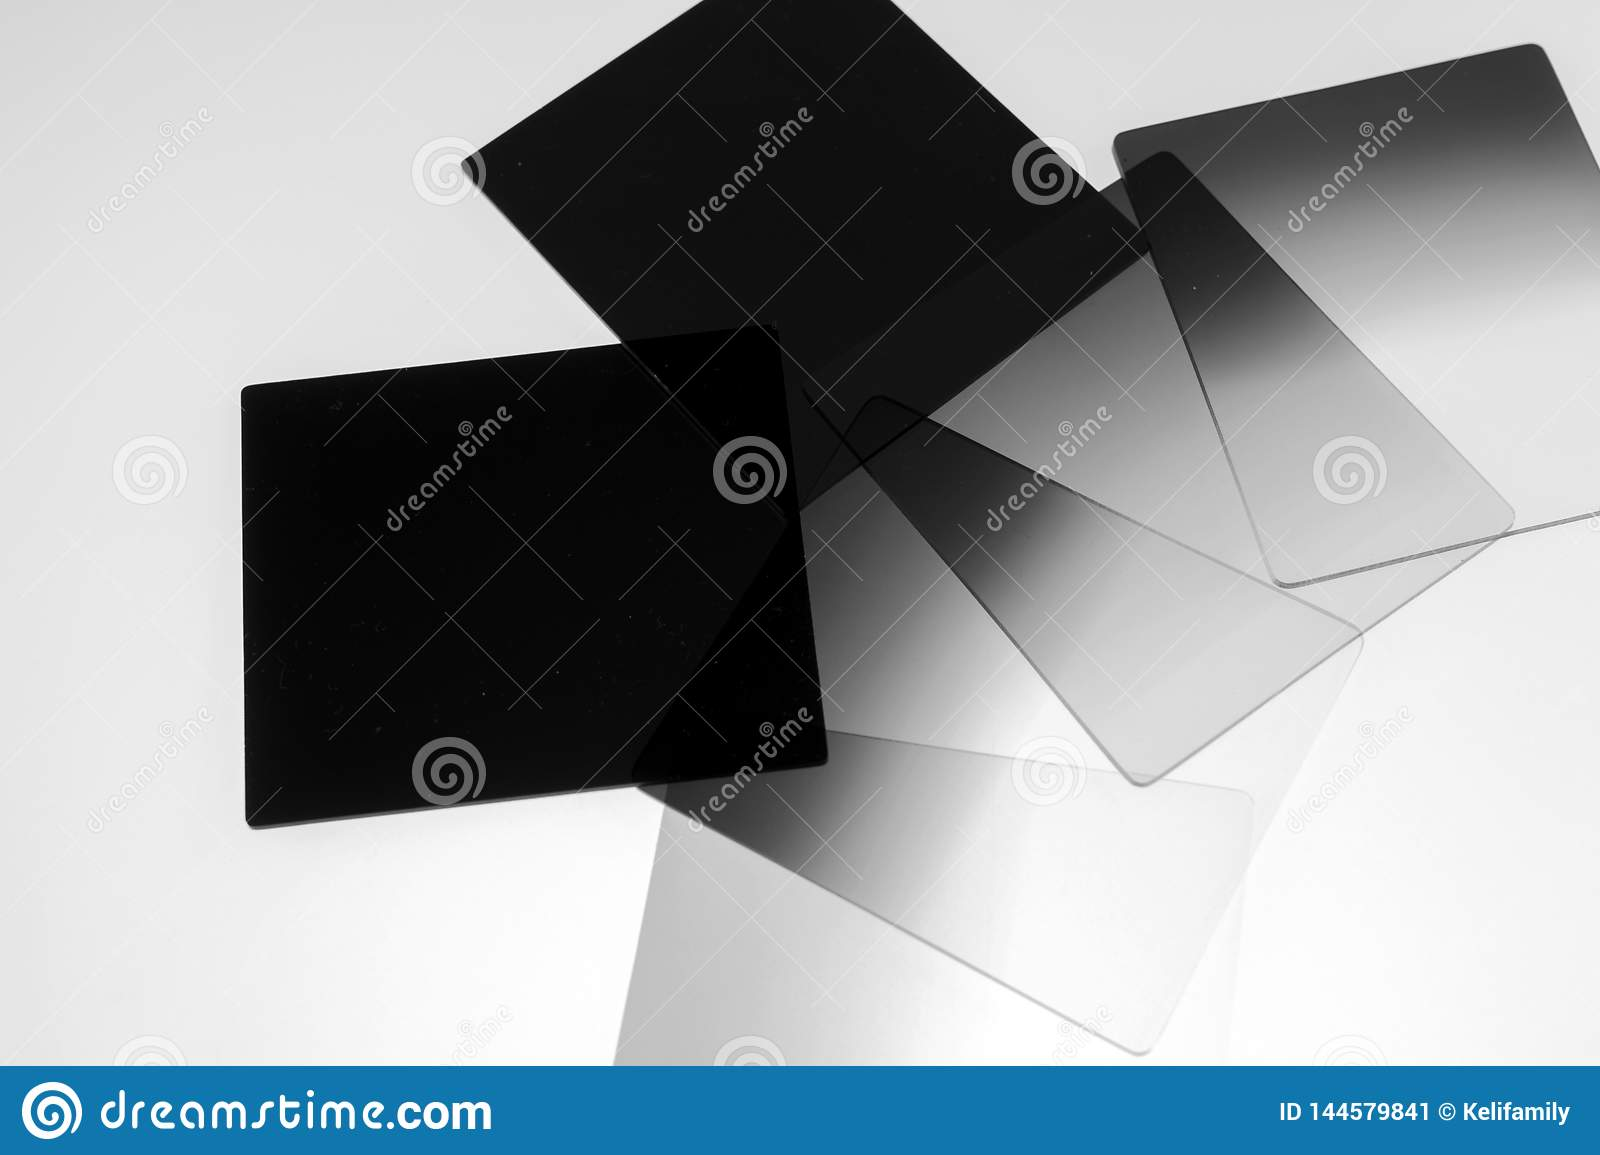 Neutral density and graduated neutral density filters used in camera for photography